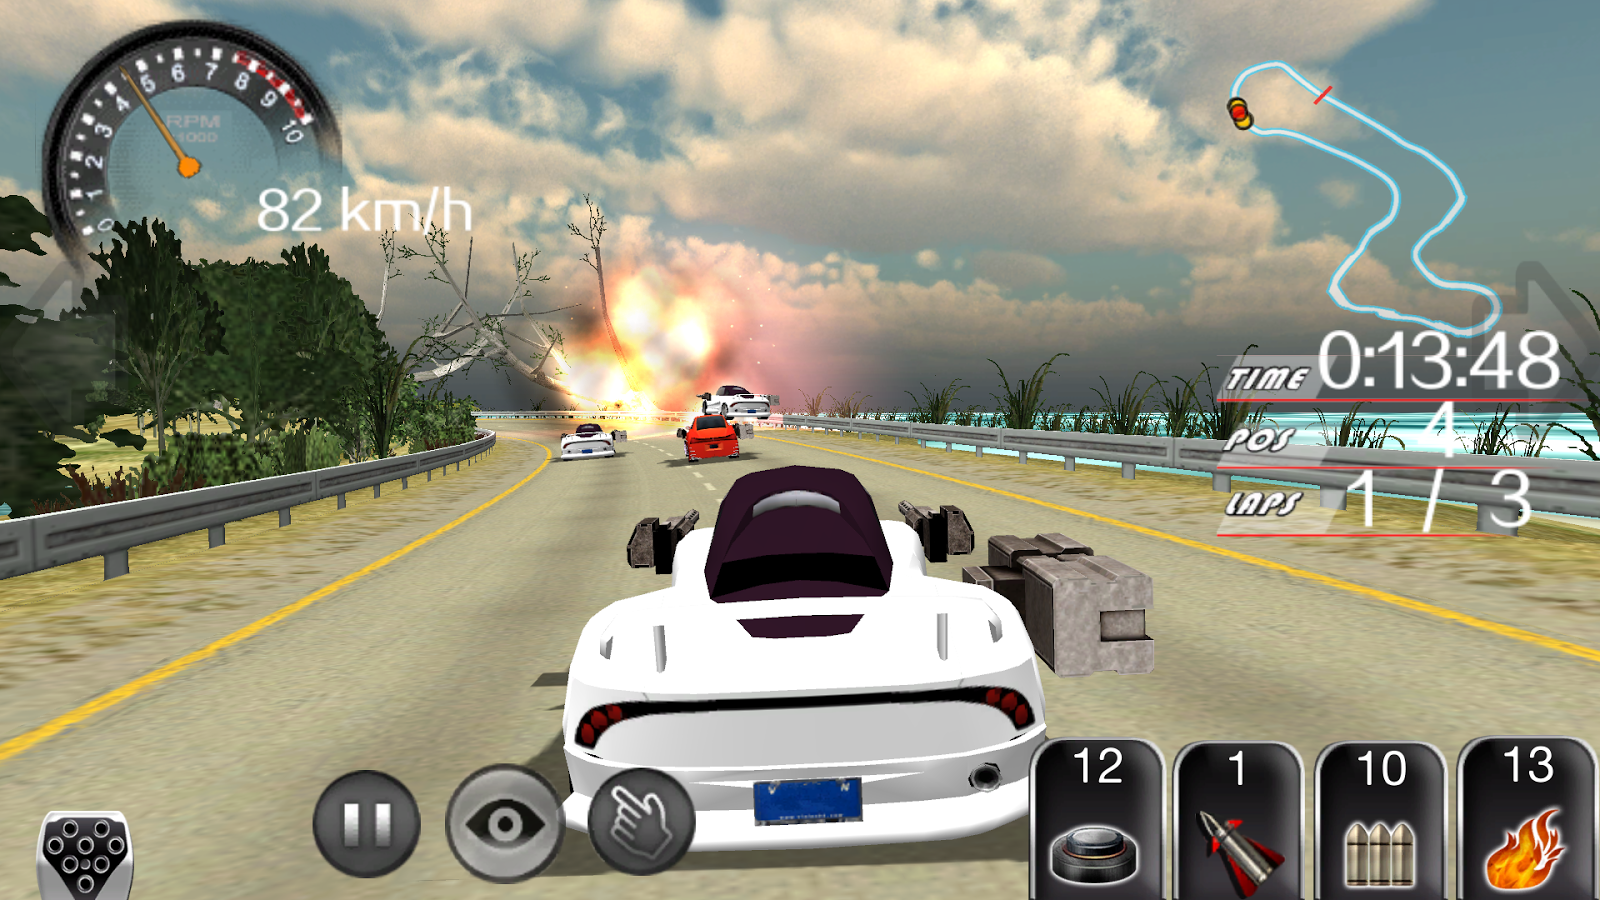 Armored Car Racing Game Android Apps On Google Play - Sports cars racing games